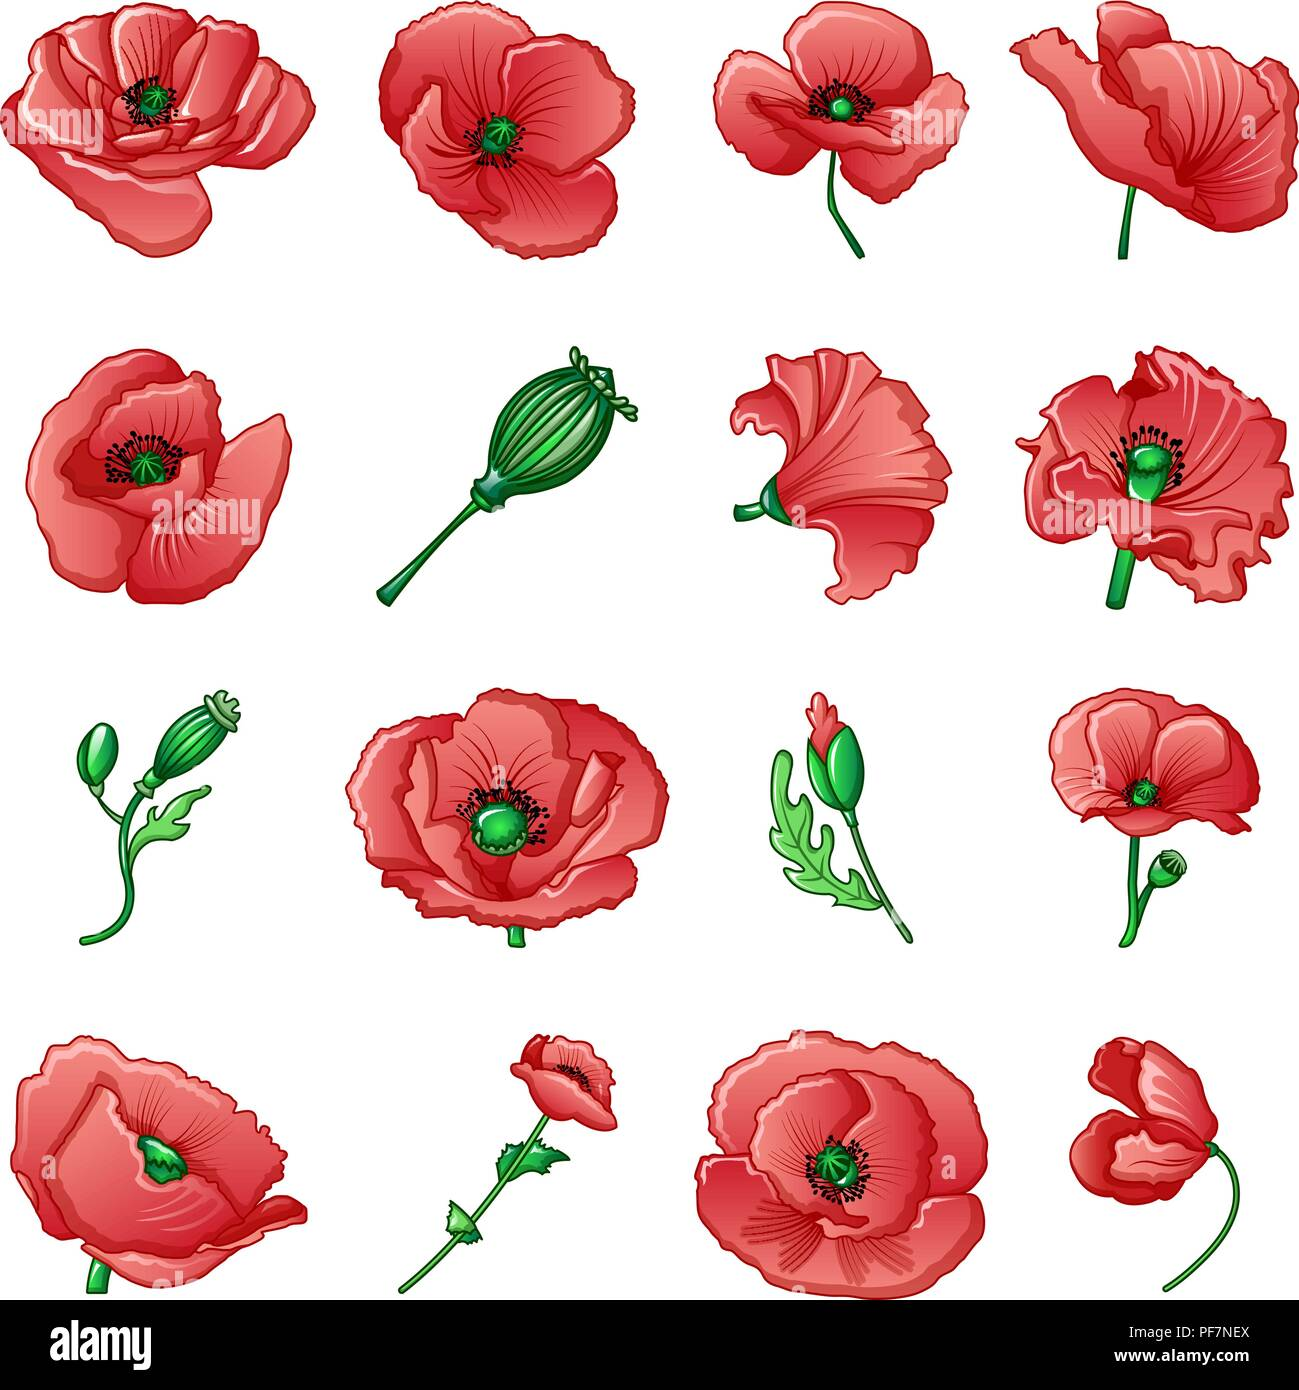 Poppy remembrance day icons set, cartoon style - Stock Vector